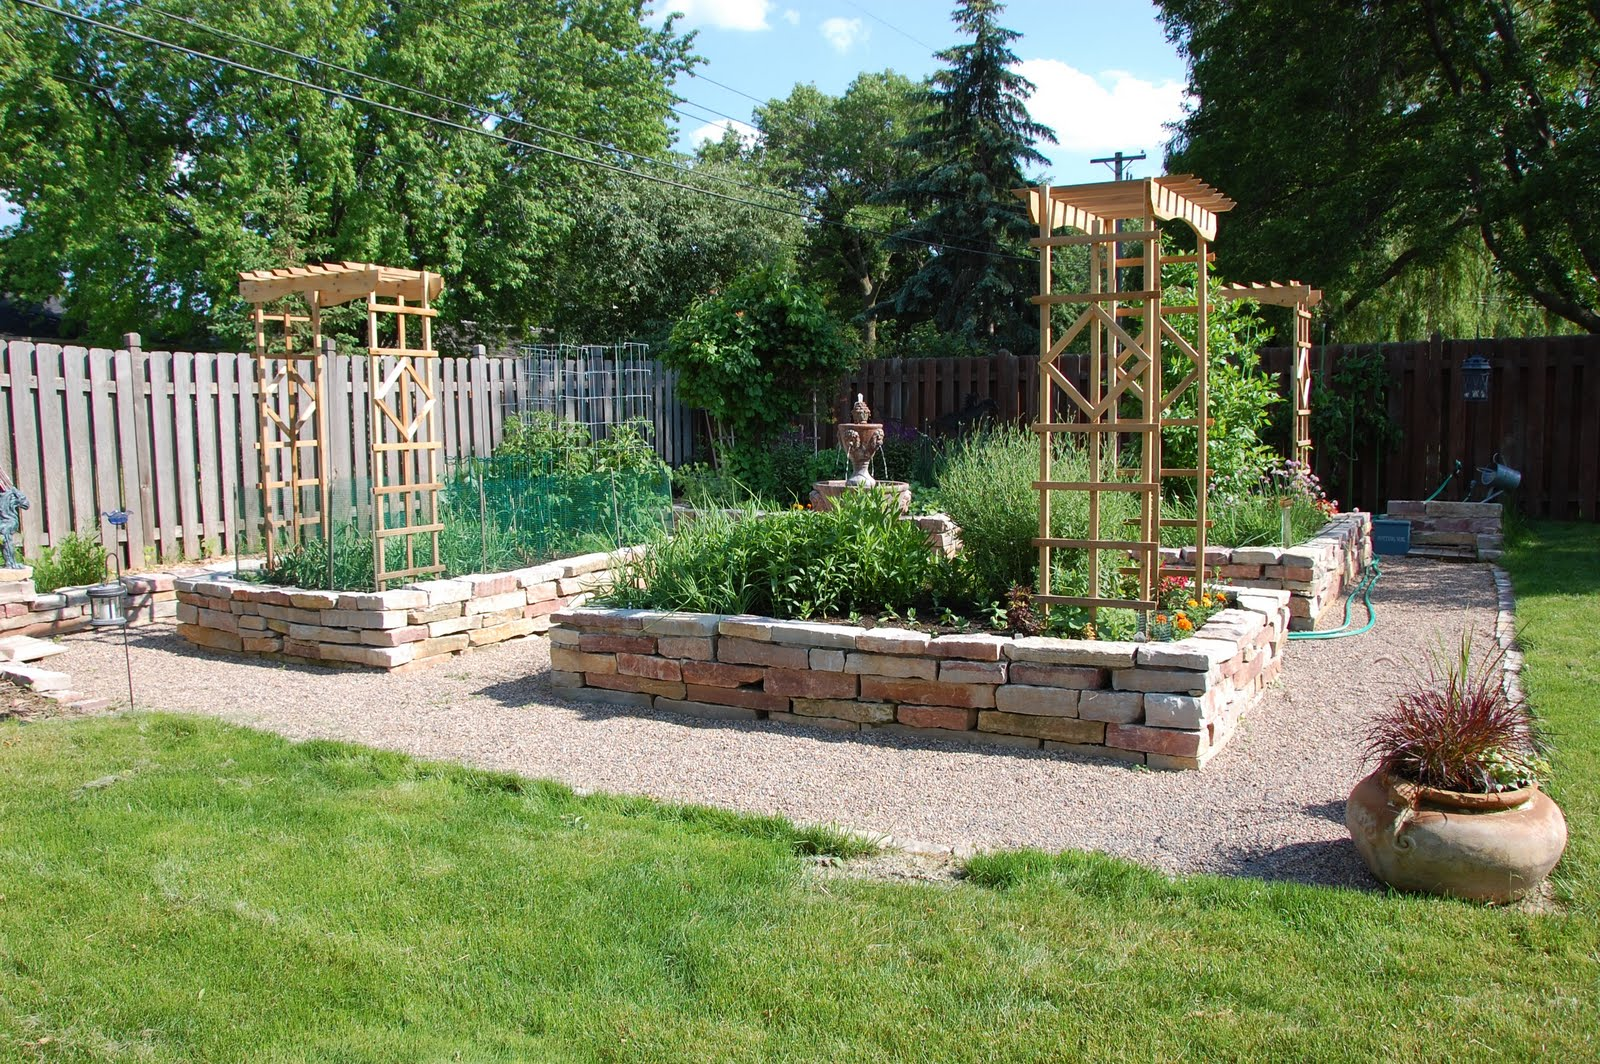 Vignette design design bucket list 3 design a beautiful for Raised bed garden designs plans